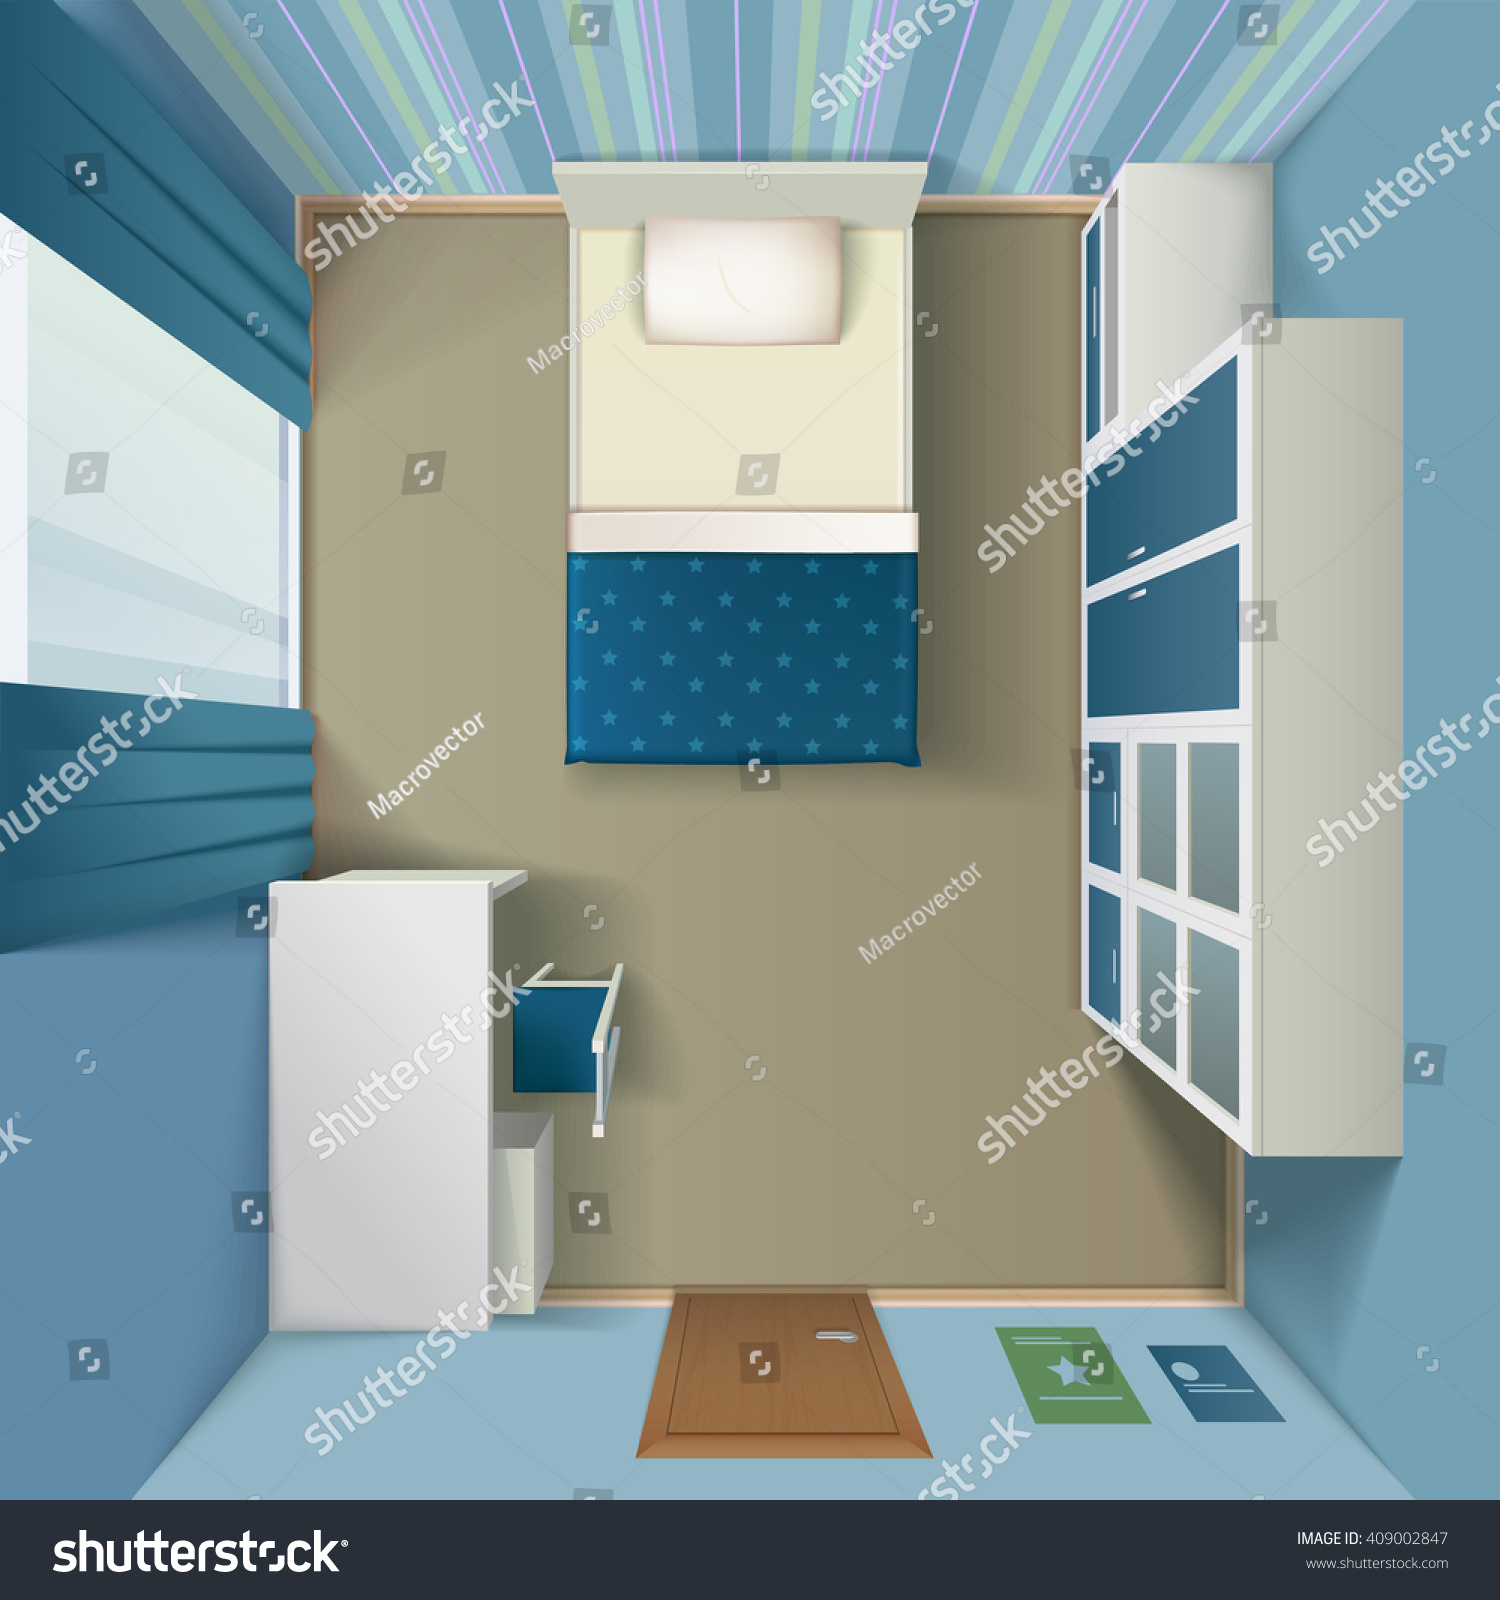 Single bedroom top view - Modern Bedroom Interior Design With Queen Size Bed And White Single Wardrobe Top View Realistic Vector